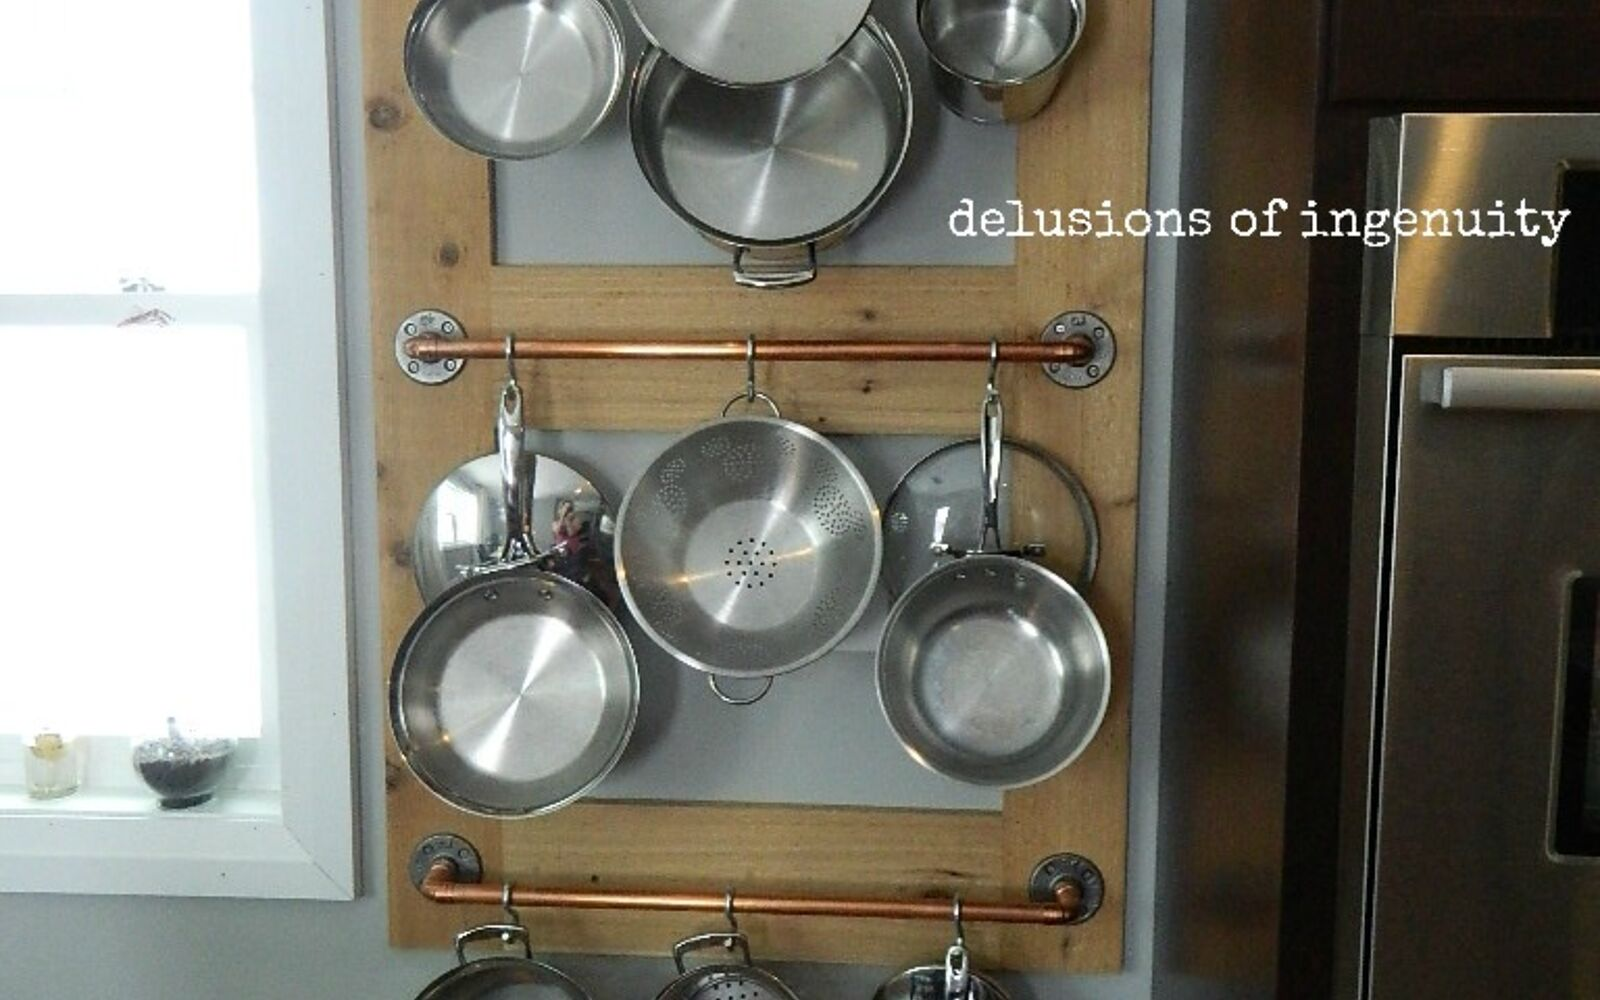 s 31 storage hacks that will instantly declutter your kitchen, Hang up your pots using crossbars and hooks